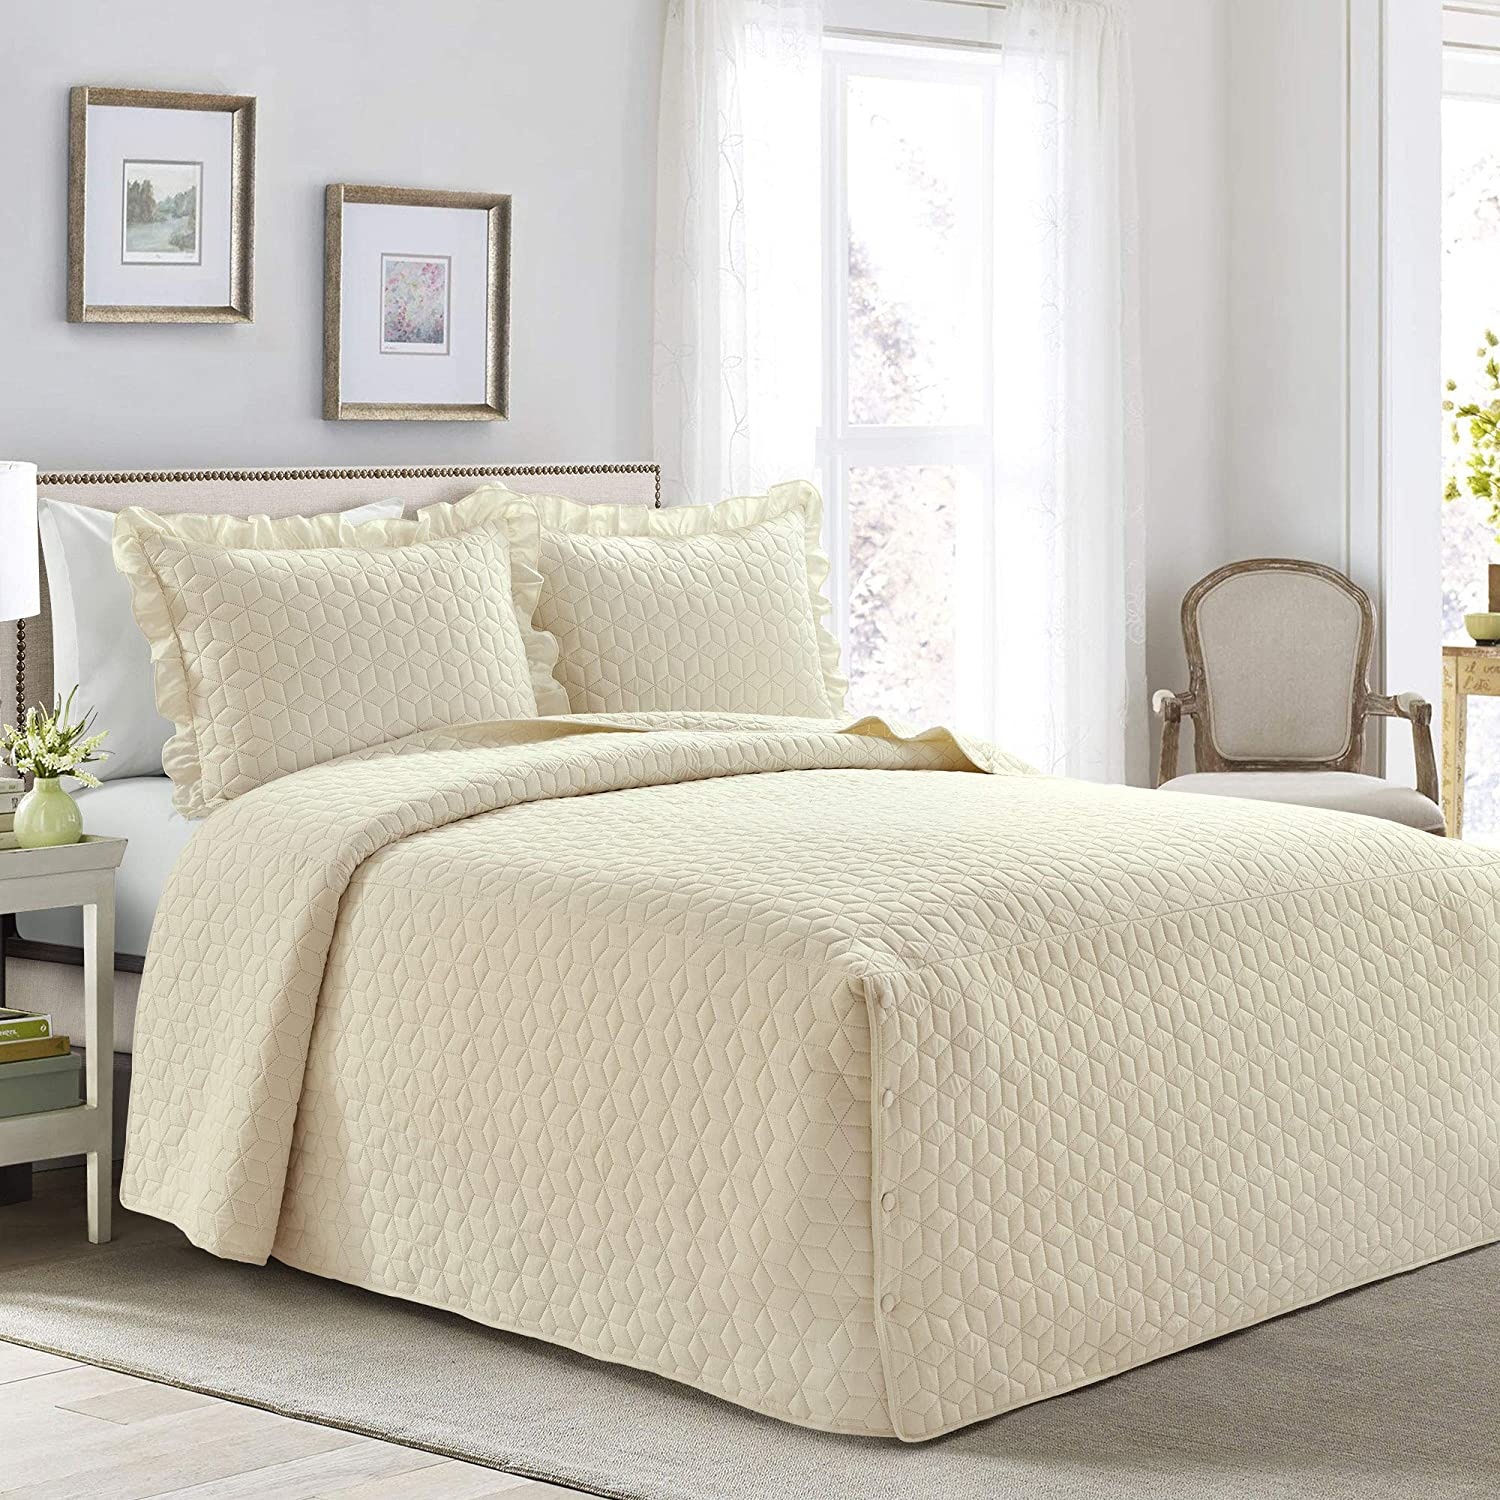 Lush Decor French Country Geo Ruffle Bedding, 3-Piece Bedspread Set (Queen, Ivory)